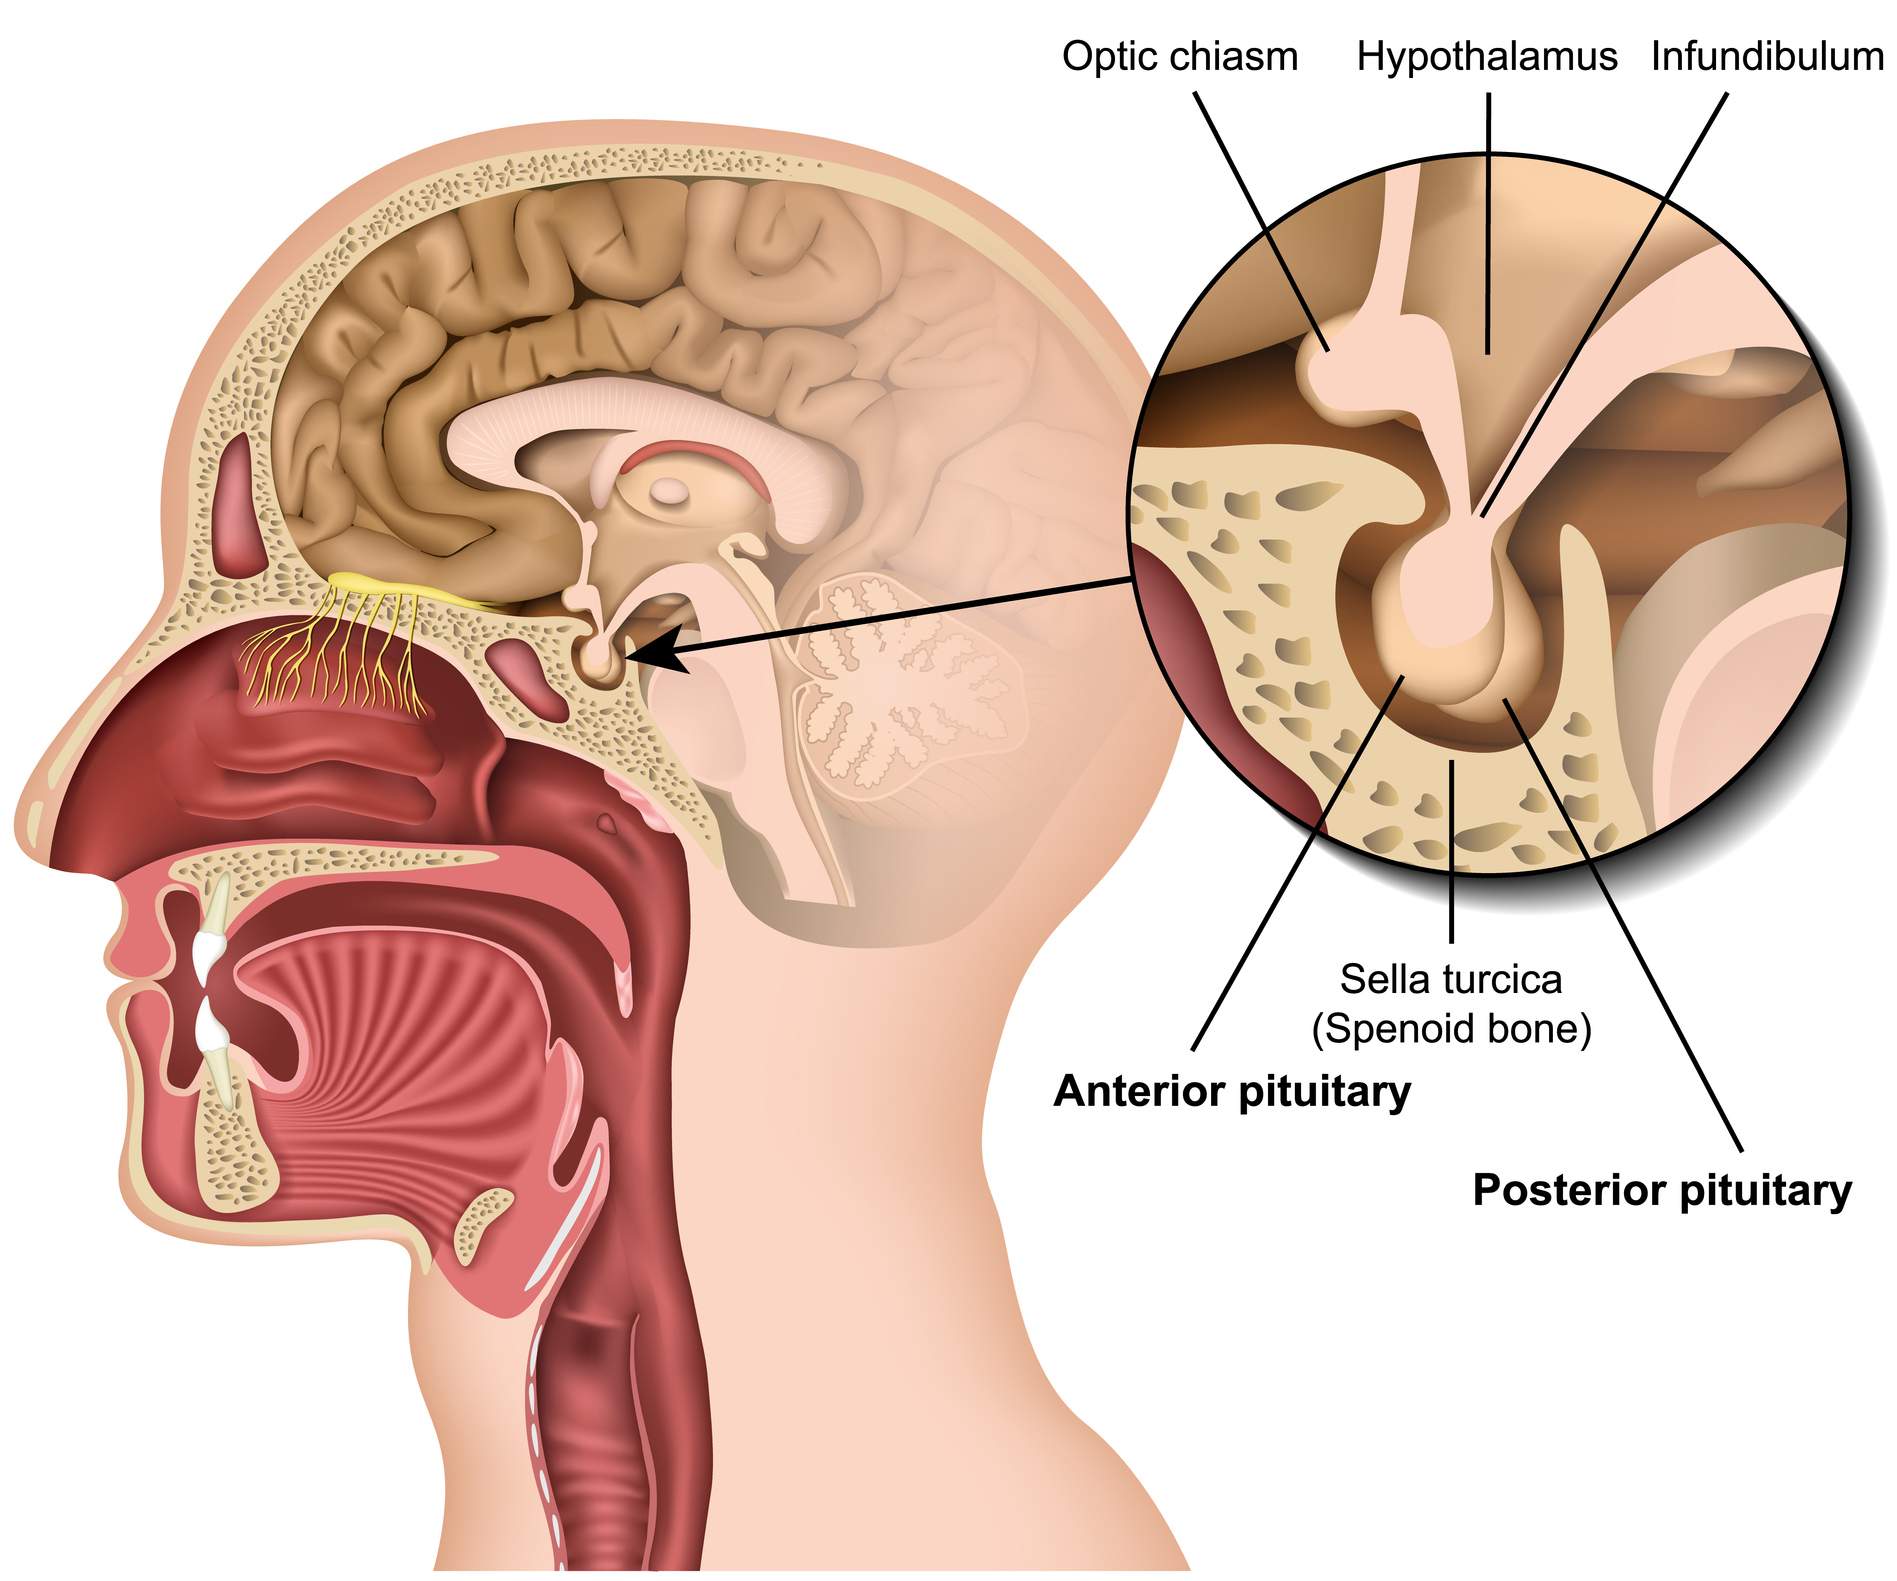 Diagram of the anatomy of the pituitary gland